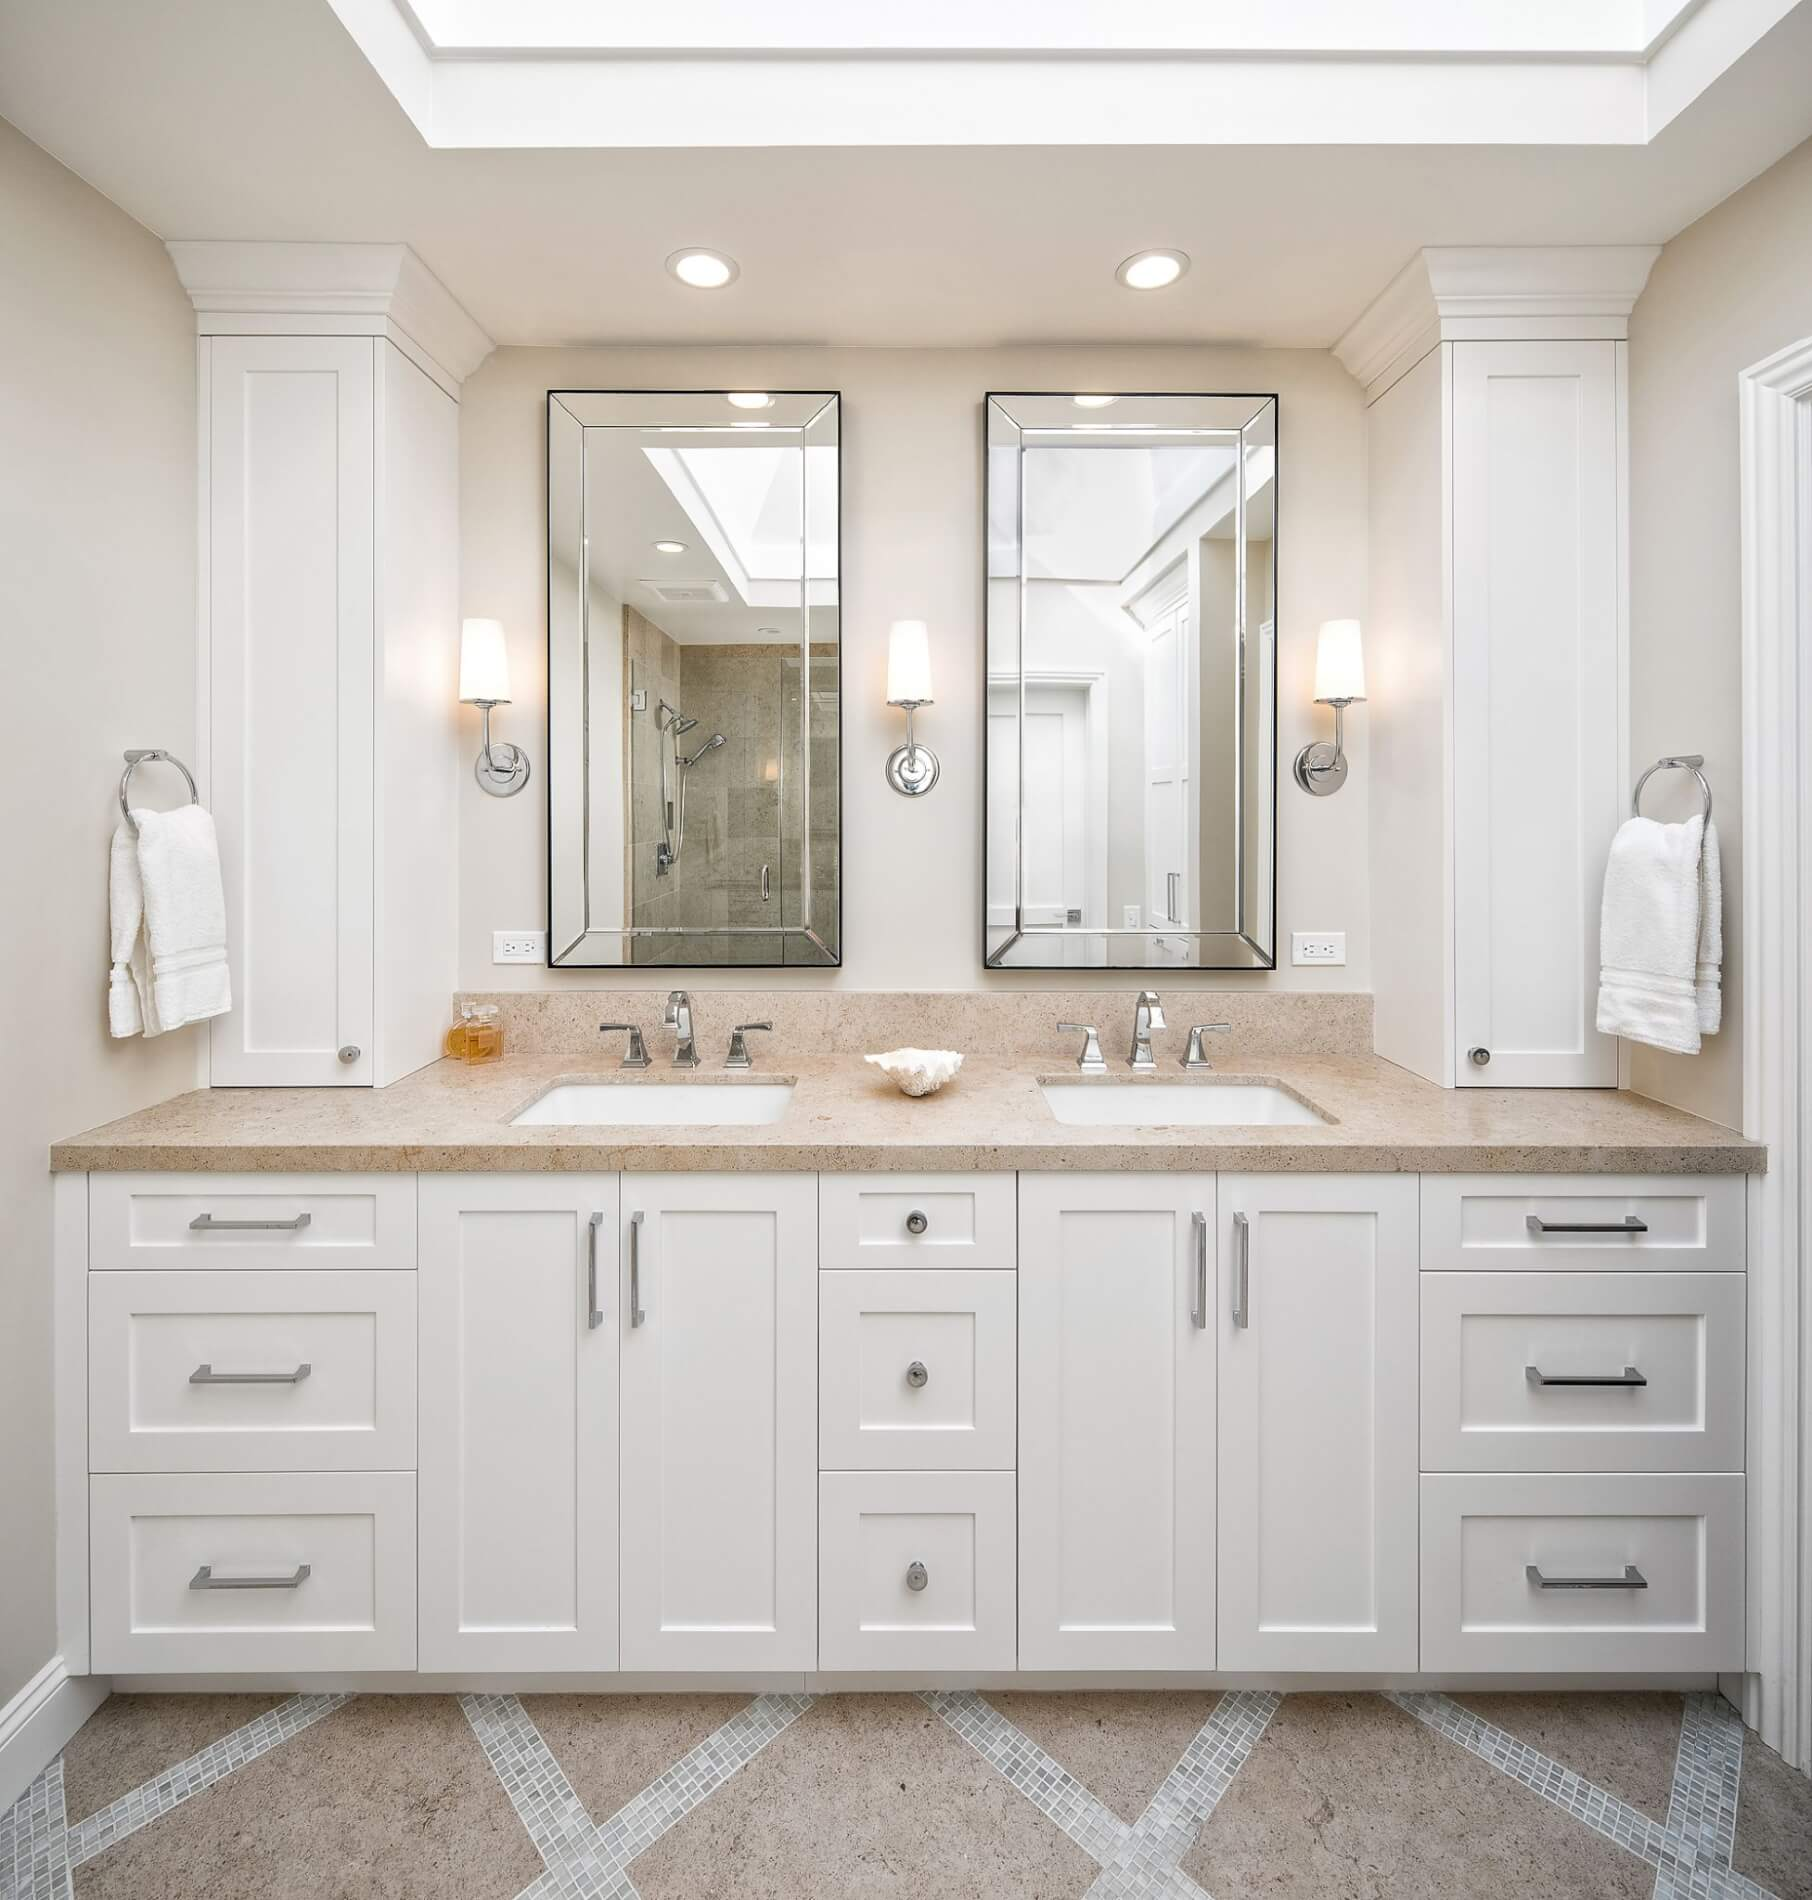 A Bathroom Remodel Delivers Amazing Value